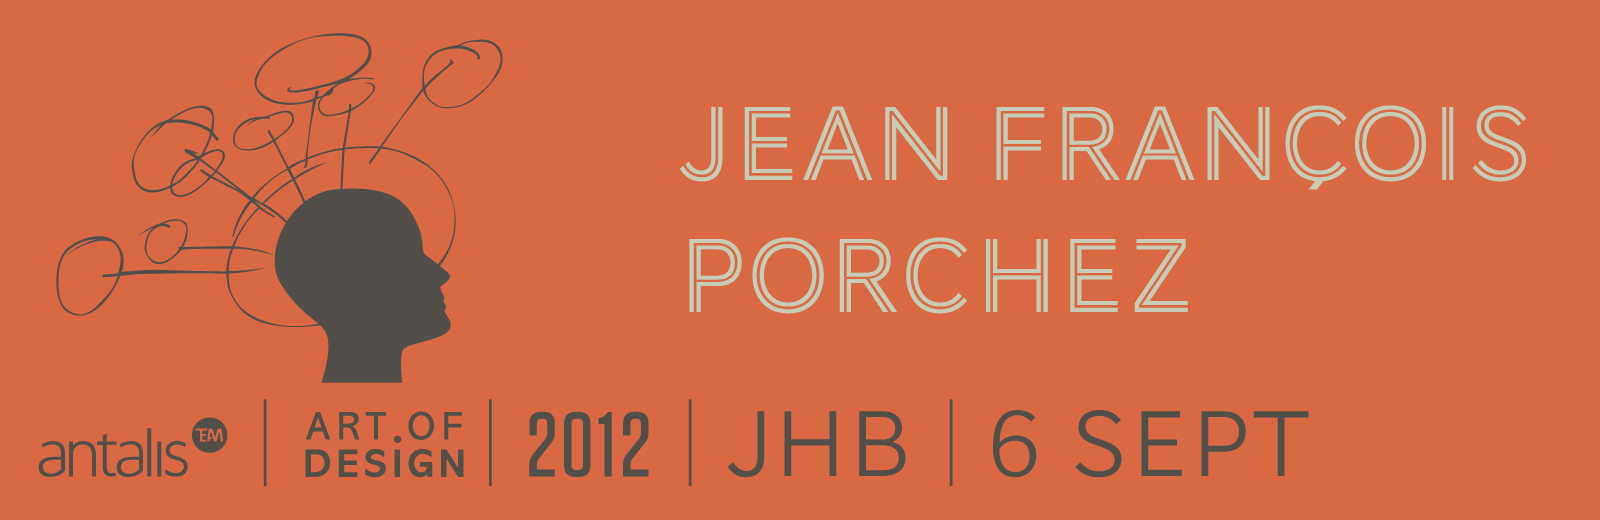 Art of design 2012: Jean François Porchez in JHB